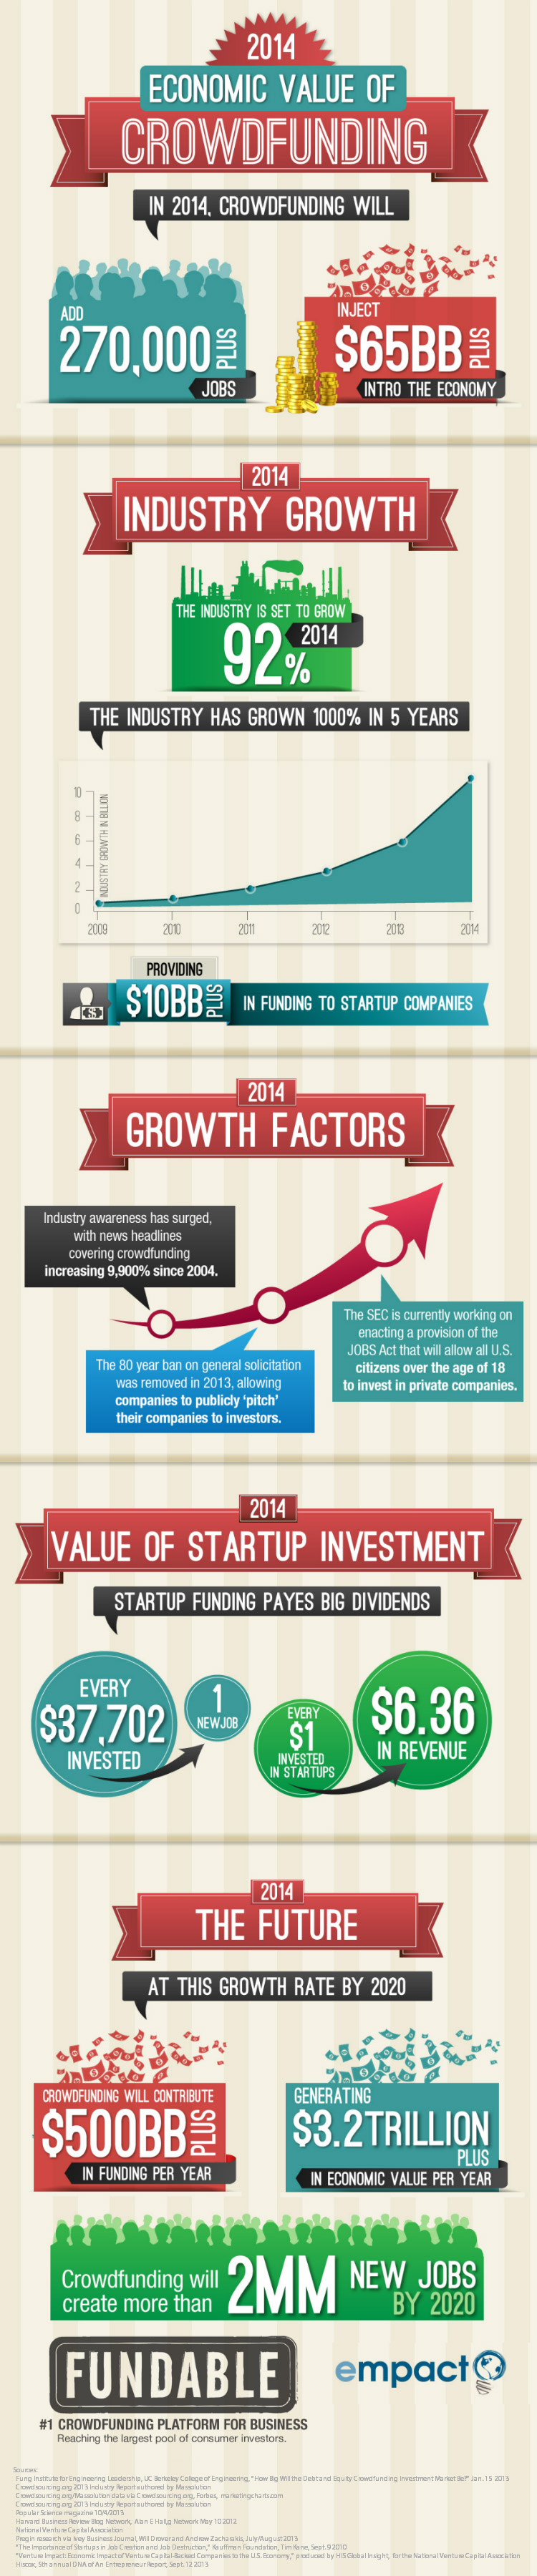 03 1389896585-crowdfunding-seen-providing-65-billion-boost-global-economy-2014-infographic